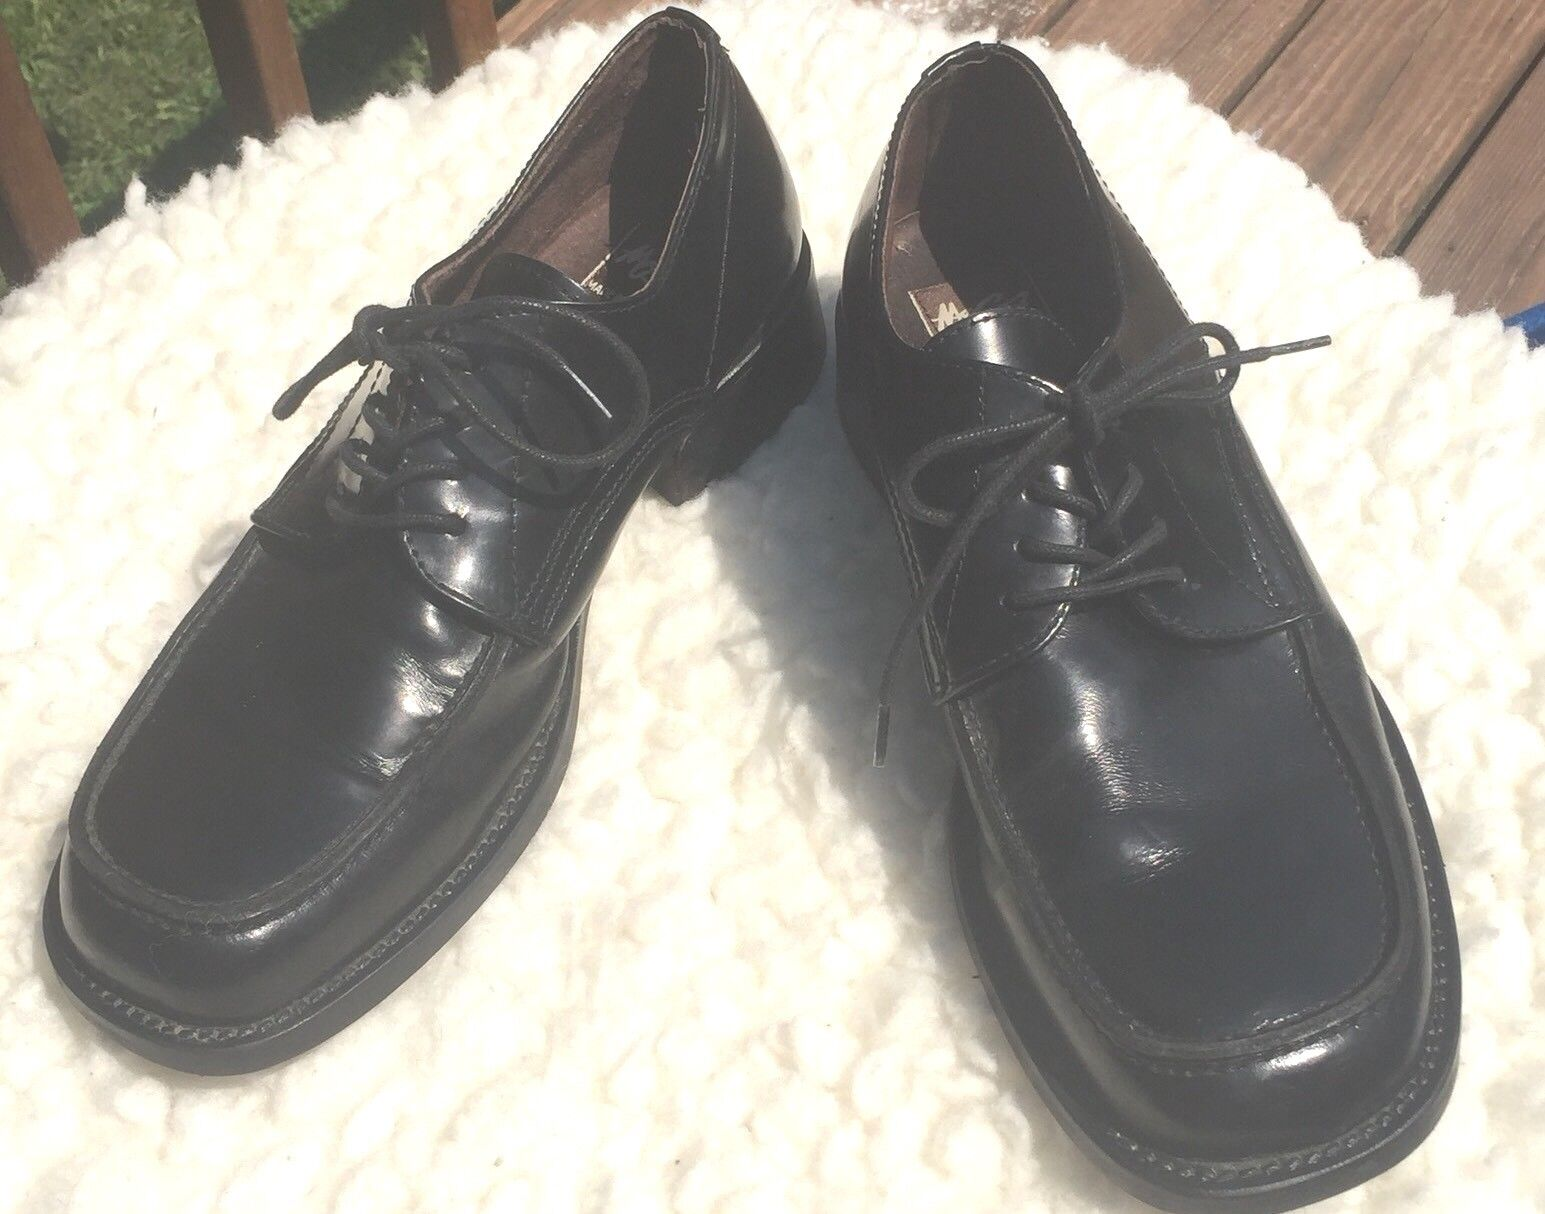 Mosa Oxford shoes Men's Leather Black Casual Career Made In Portugal Sz 10.5M